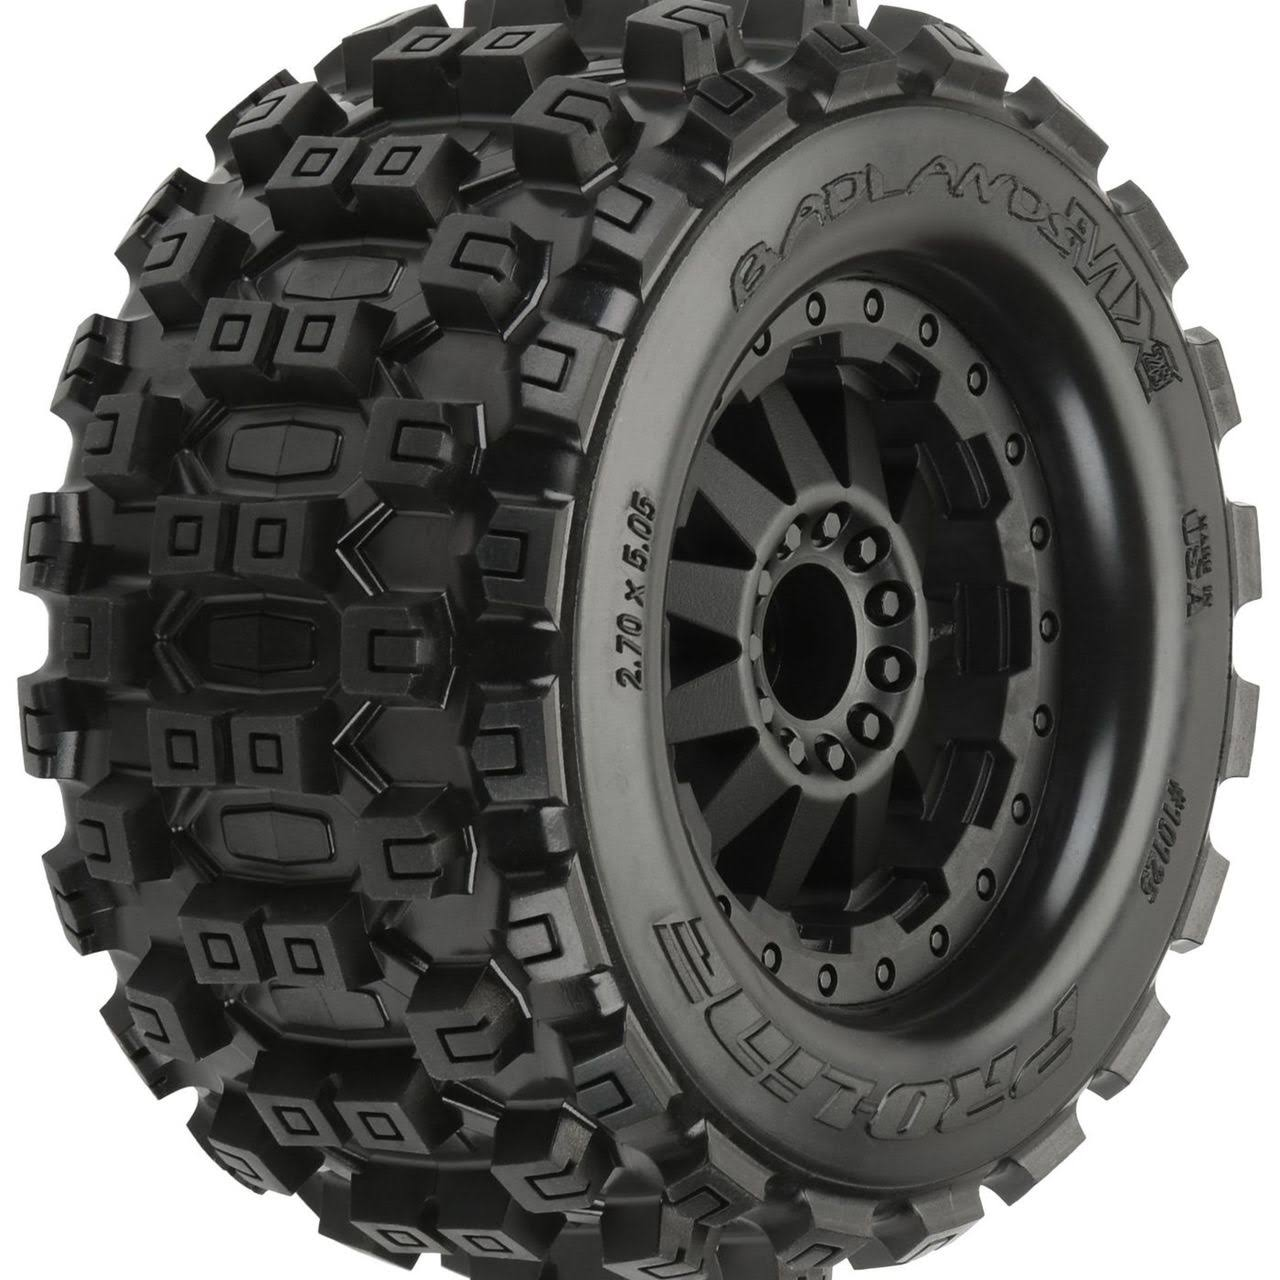 Pro-Line Badlands MX28 2.8 Pre-Mounted F-11 Wheels